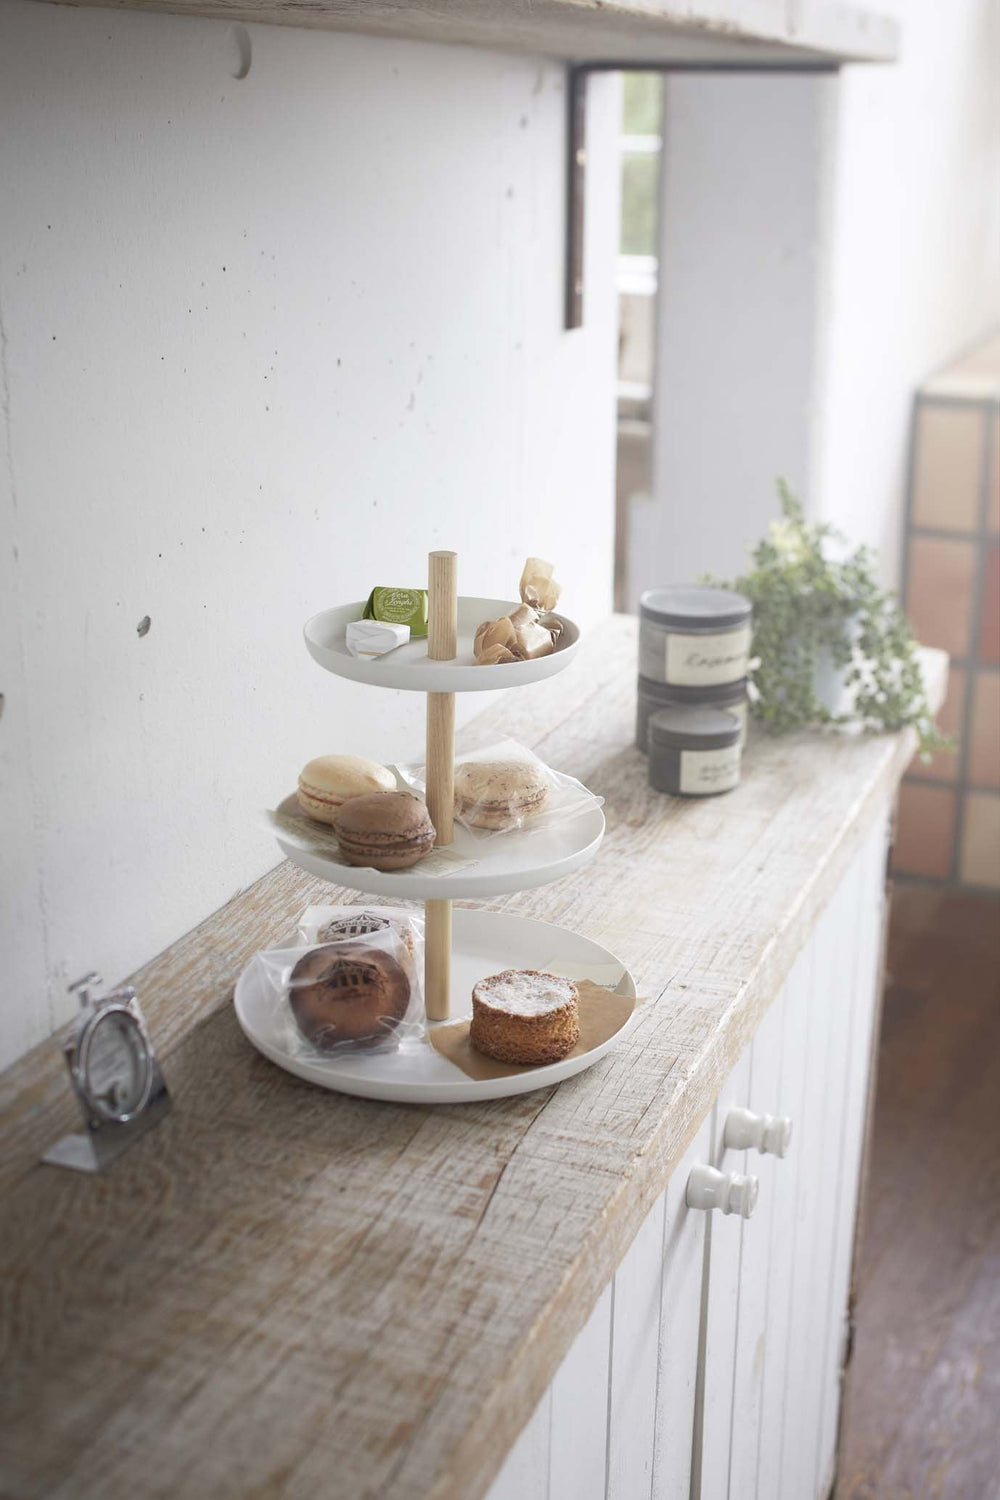 Three-tier Yamazaki tabletop server set with pastries on a kitchen shelf.